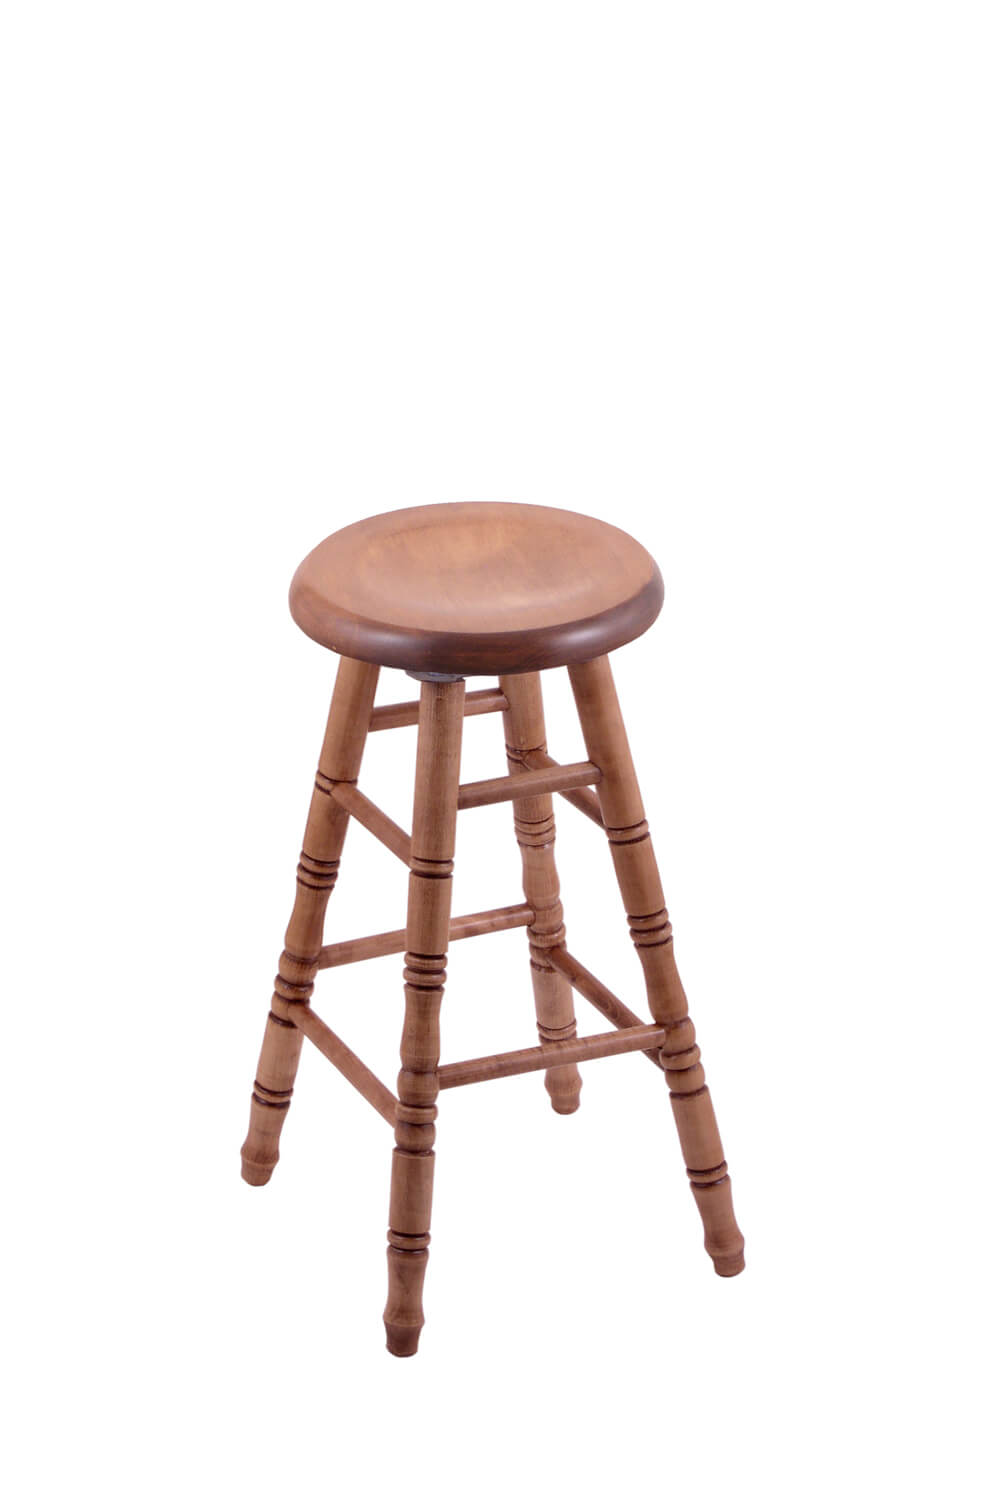 Groovy Saddle Dish Domestic Hardwood Backless Swivel Stool With Turned Legs Unemploymentrelief Wooden Chair Designs For Living Room Unemploymentrelieforg